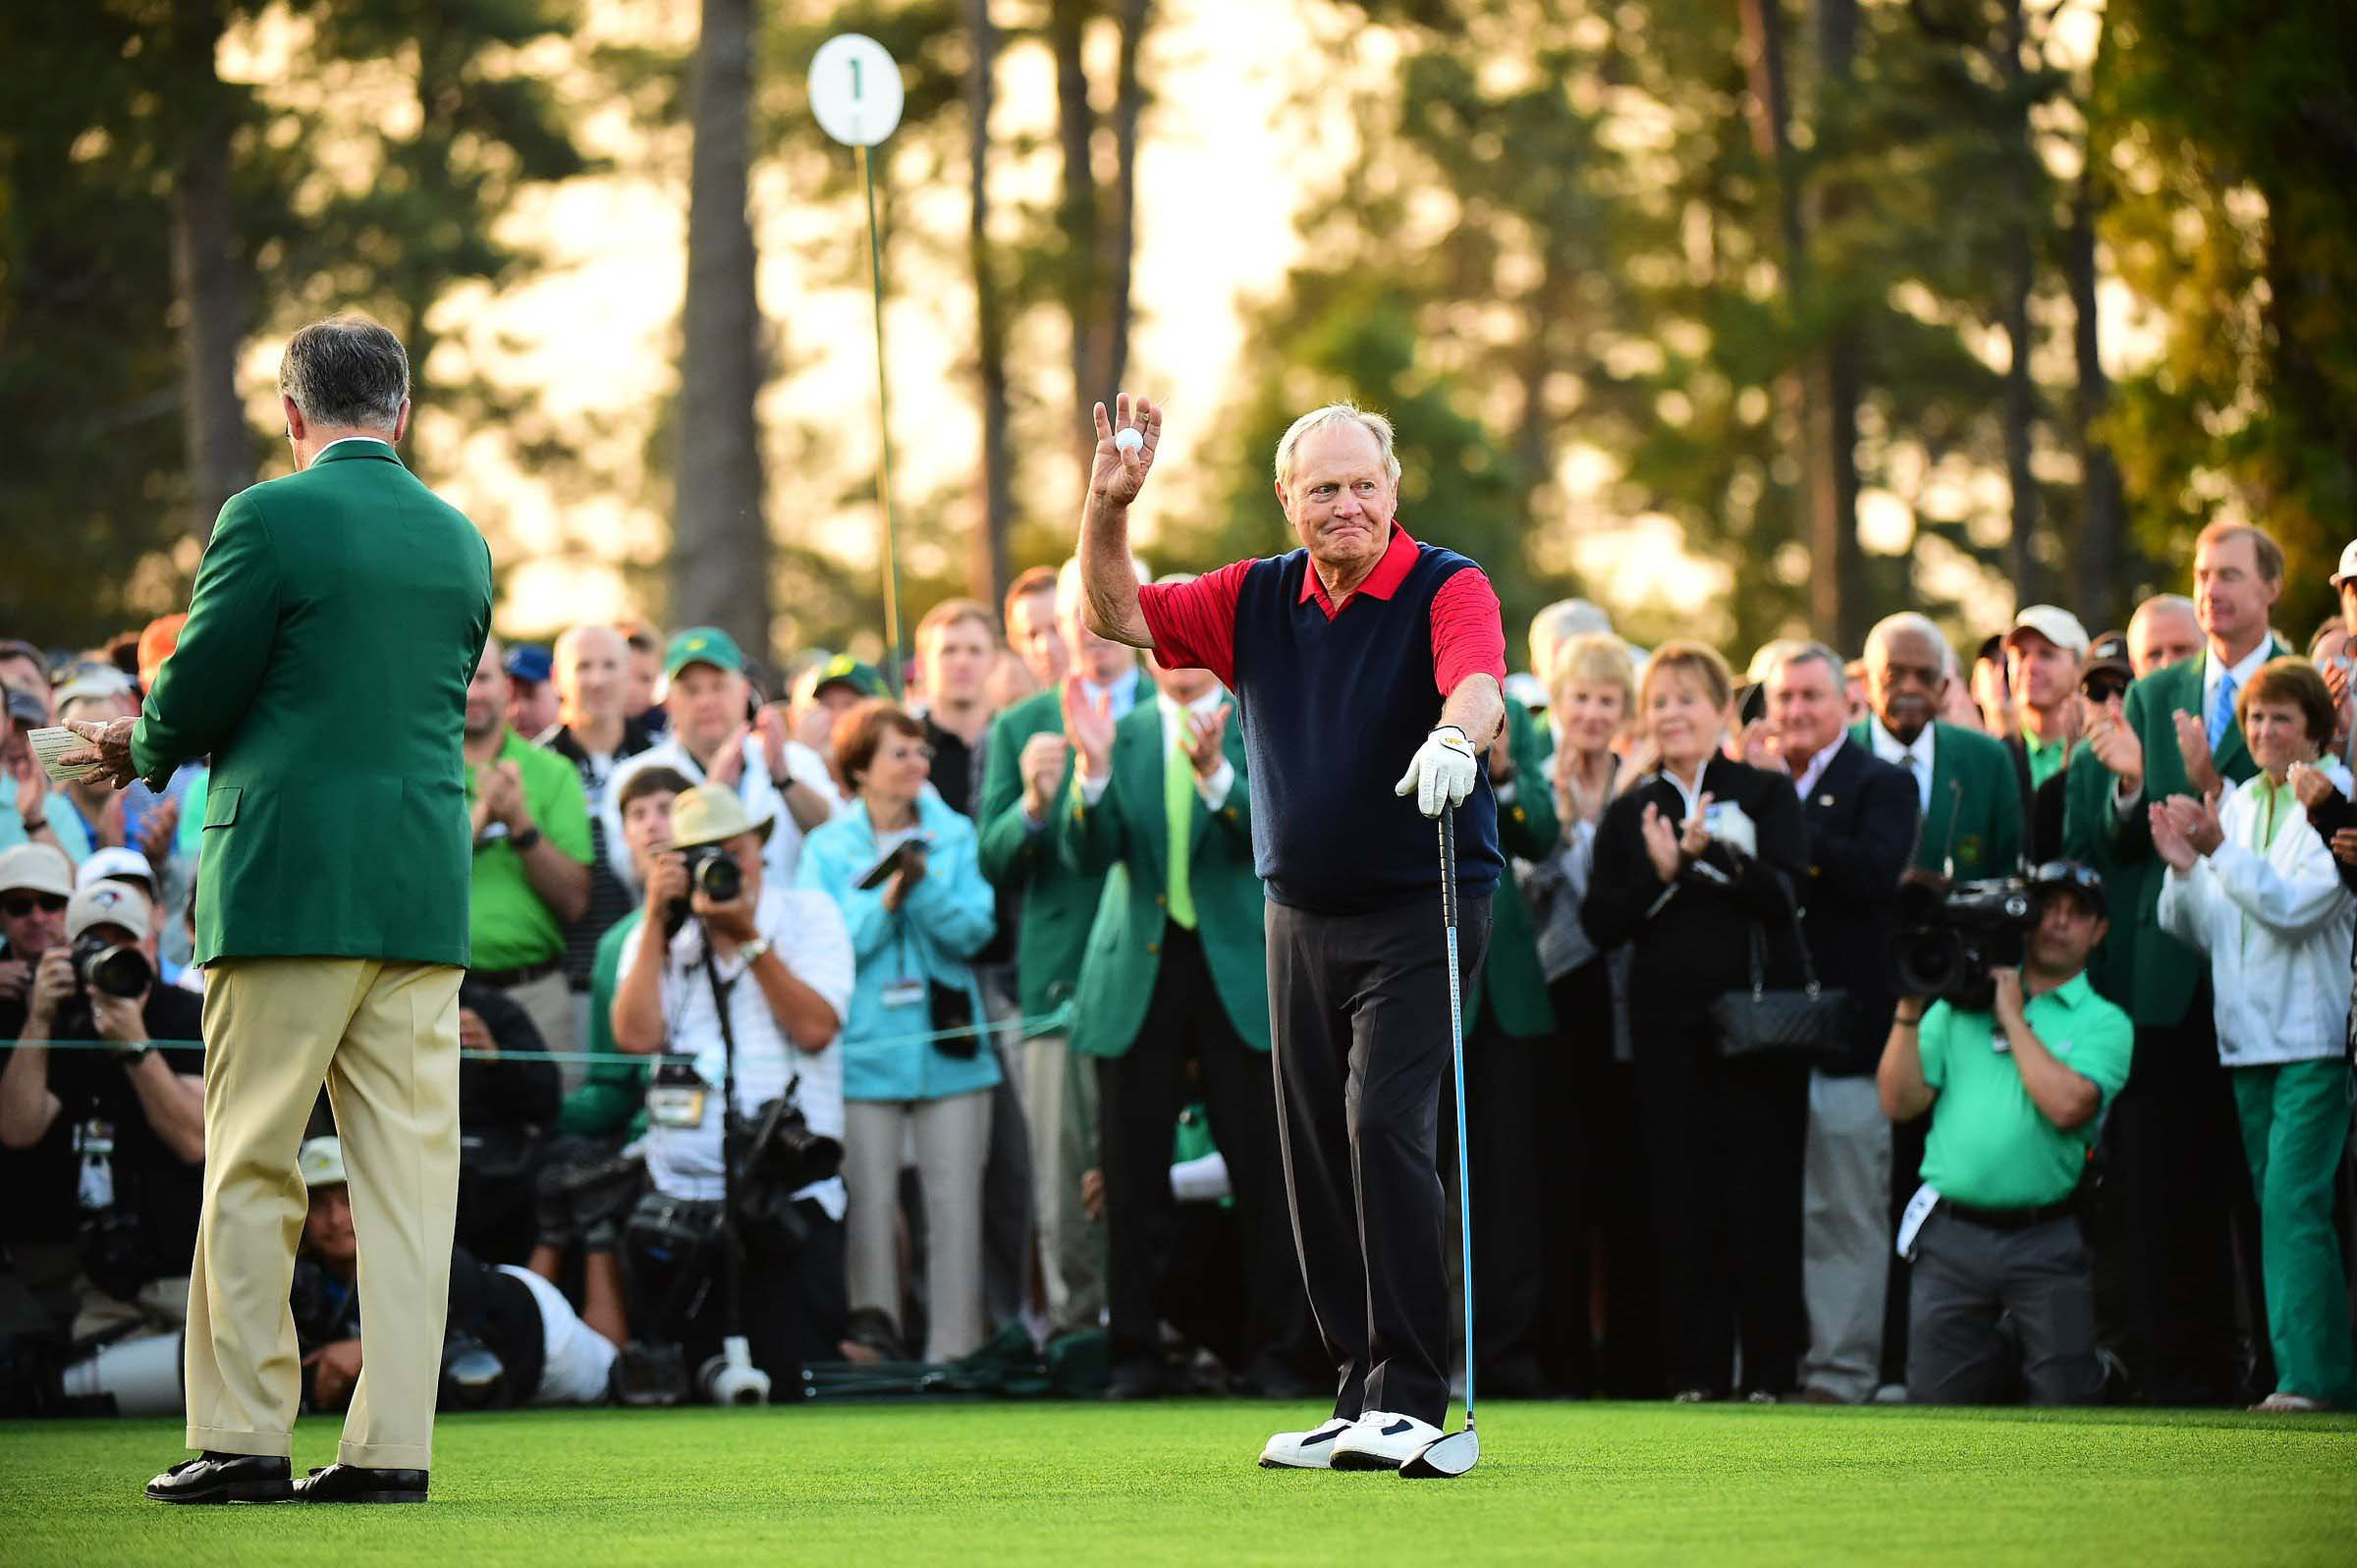 Jack Nicklaus waves to the crowd on the first tee.